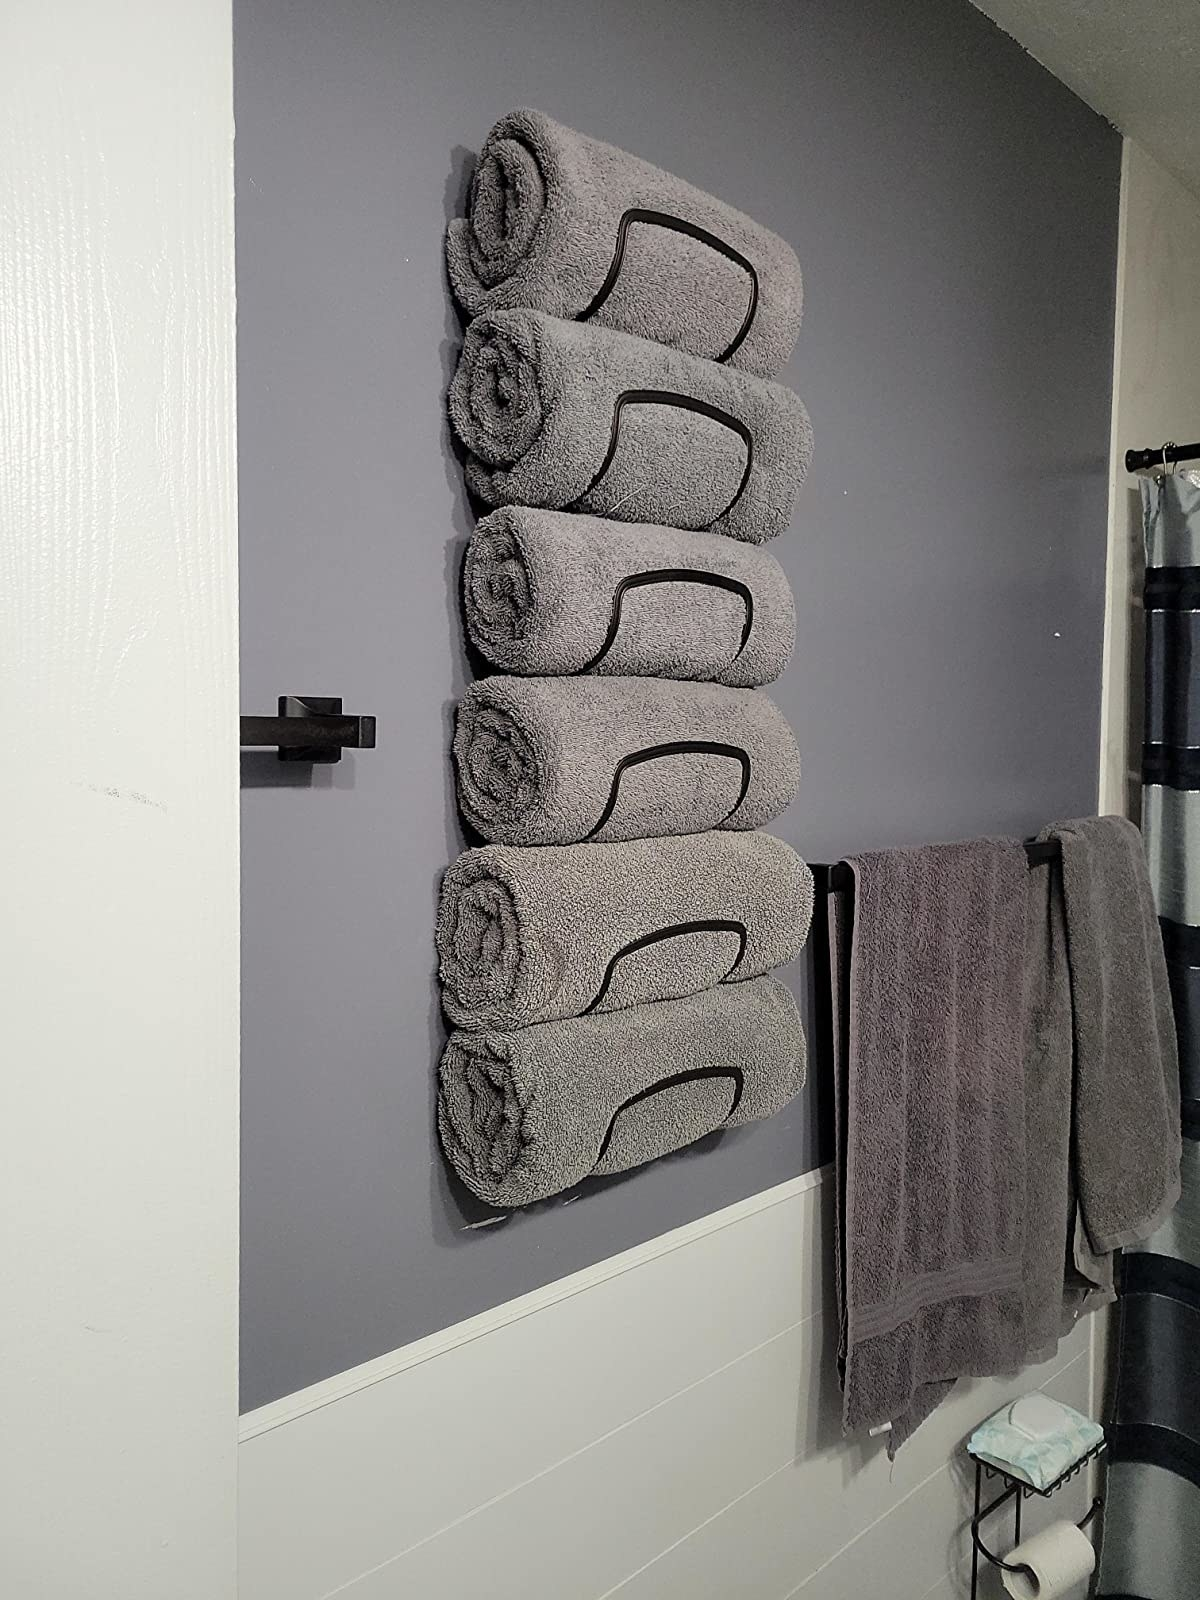 reviewer's towel rack holding six grey towels